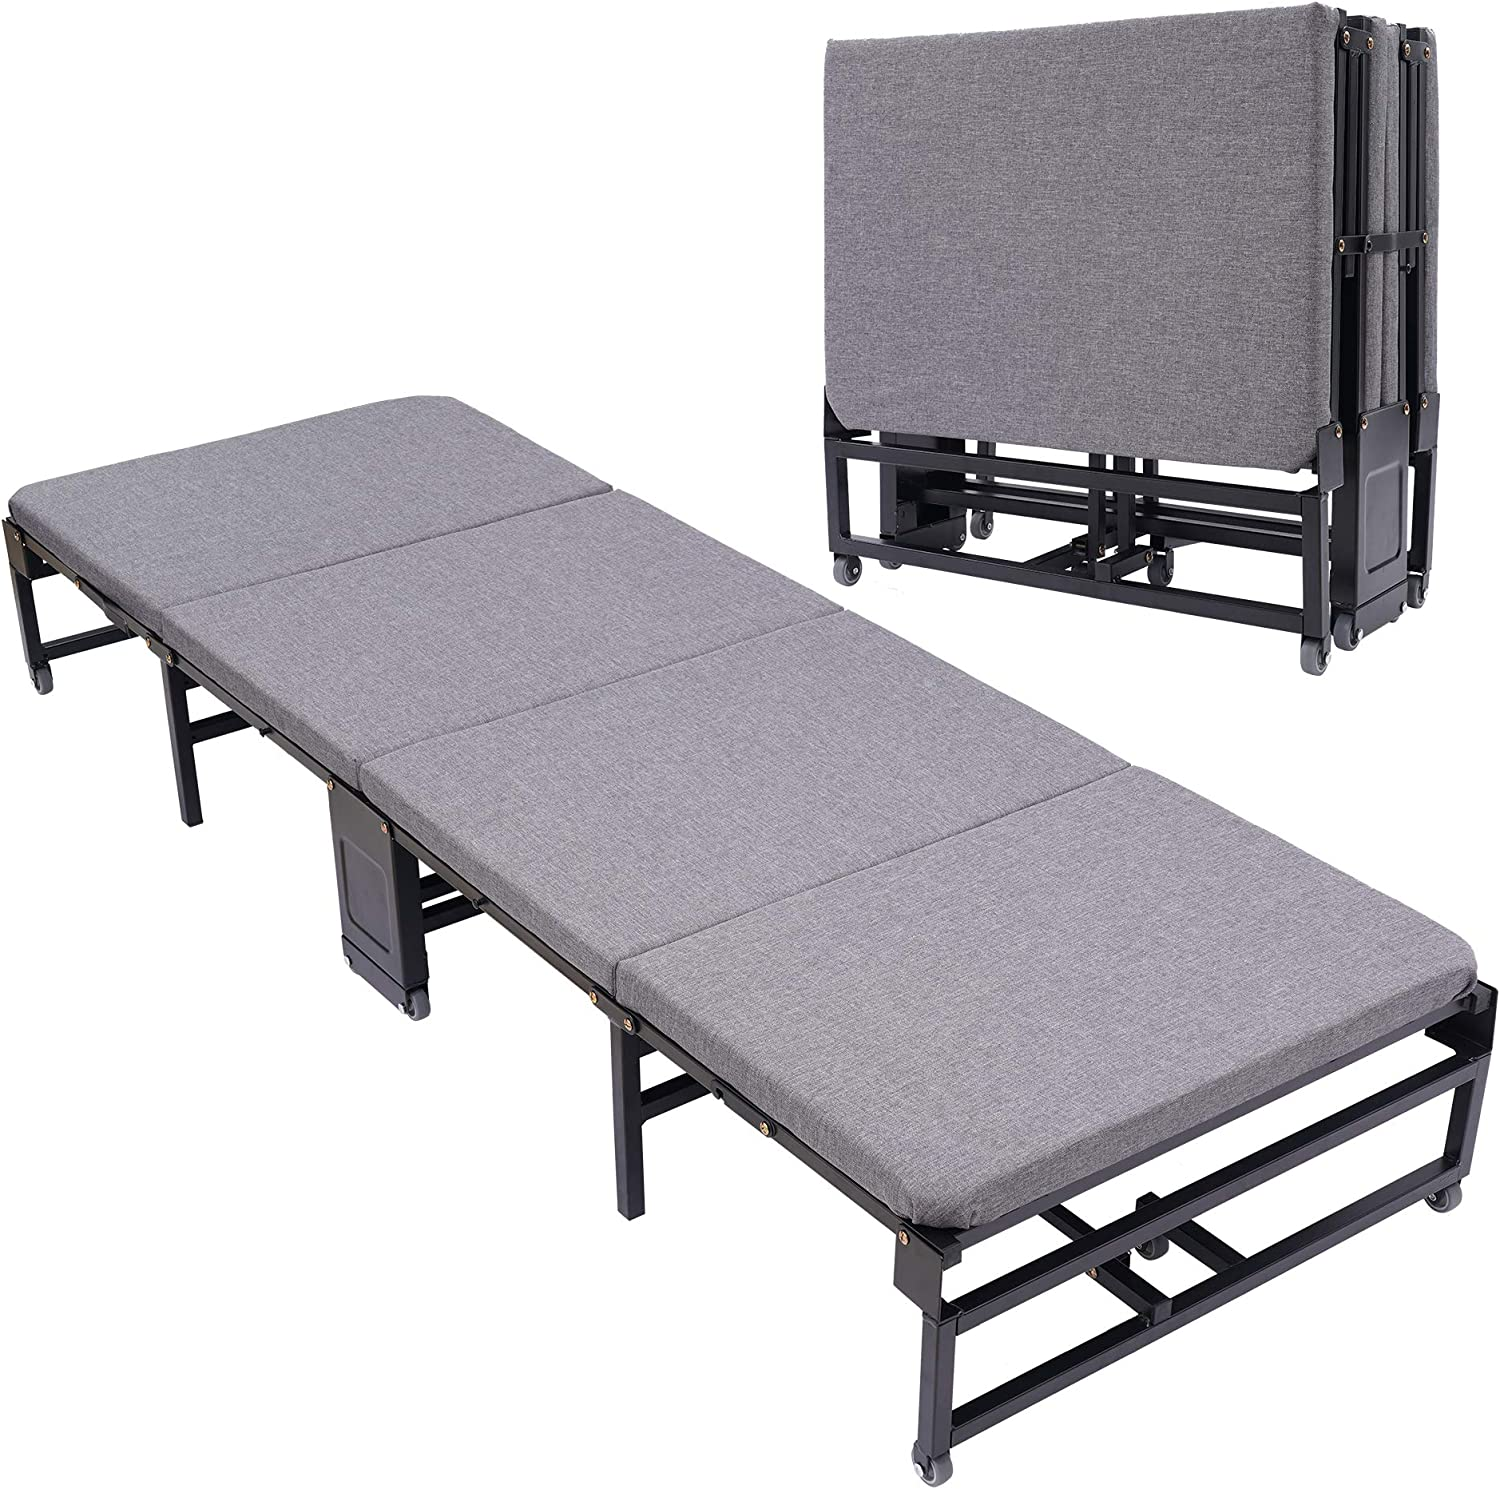 """Folding Bed Simple 4 Fold Portable Office Lounge Bed Home Adult Siesta Bed Cot - 74.8"""" L x 25.5"""" W x 11.8"""" H"""